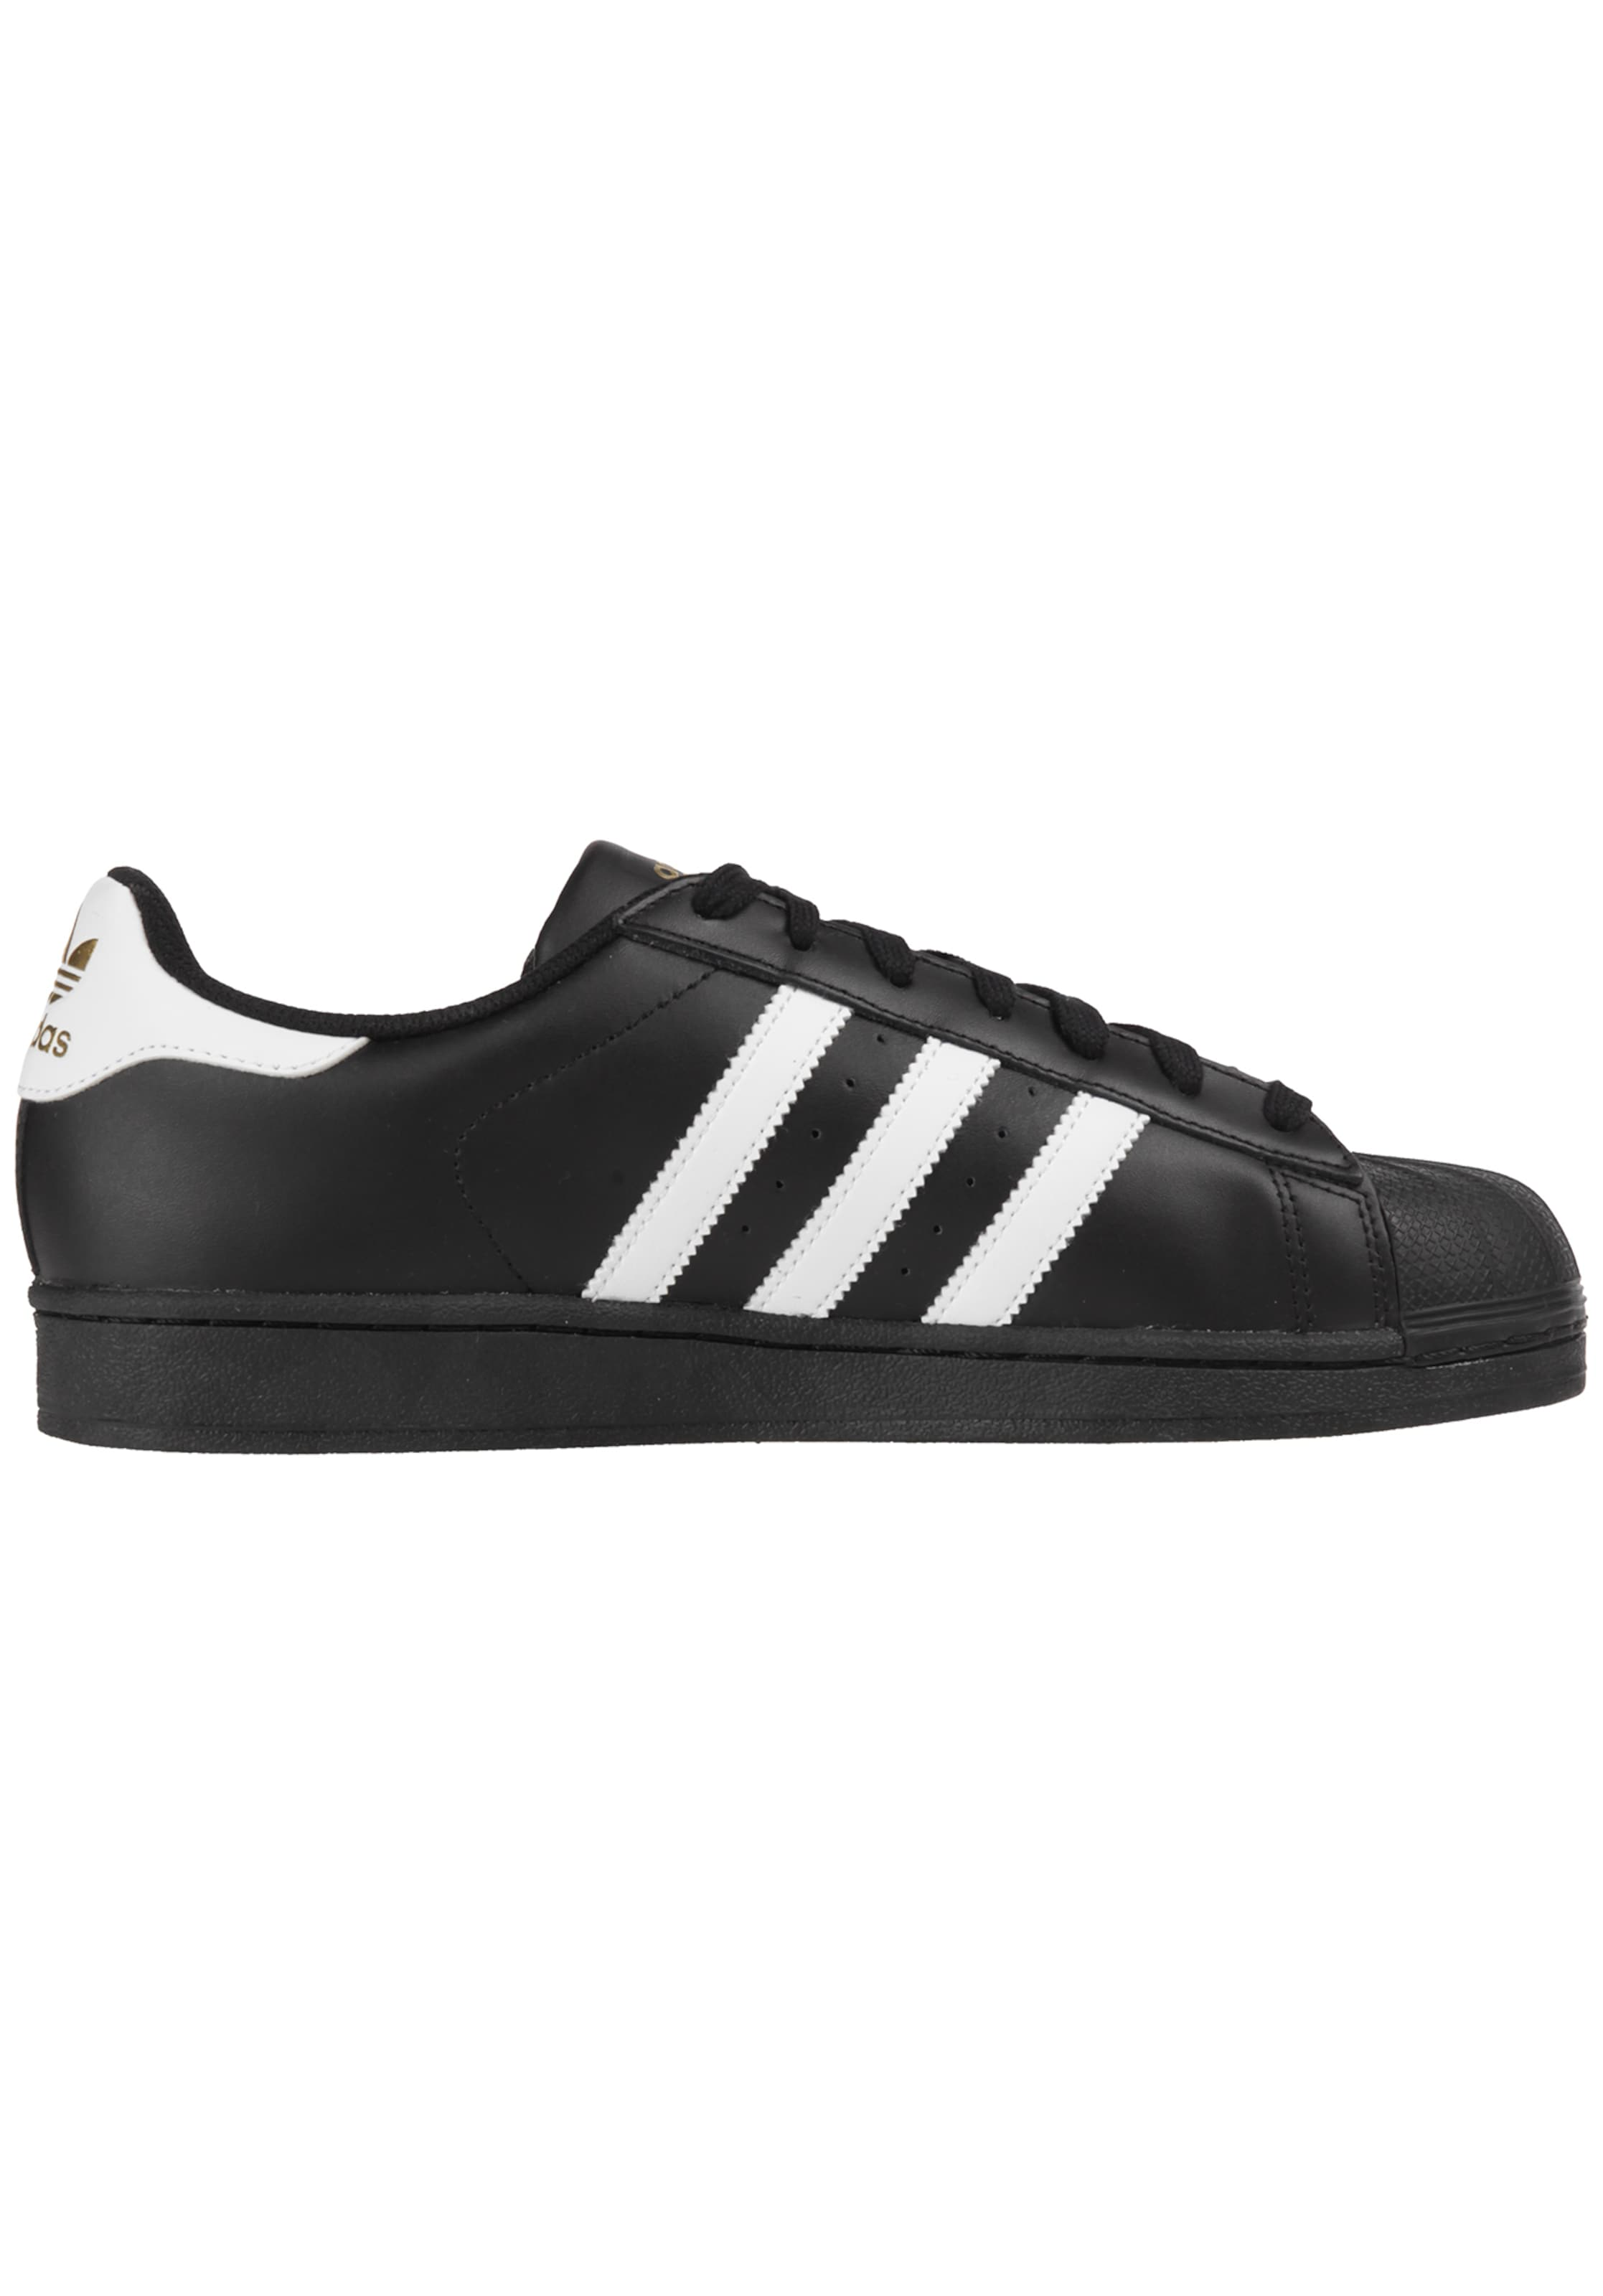 Originals 'superstar' SchwarzWeiß Adidas Sneaker In PkiOXZuT